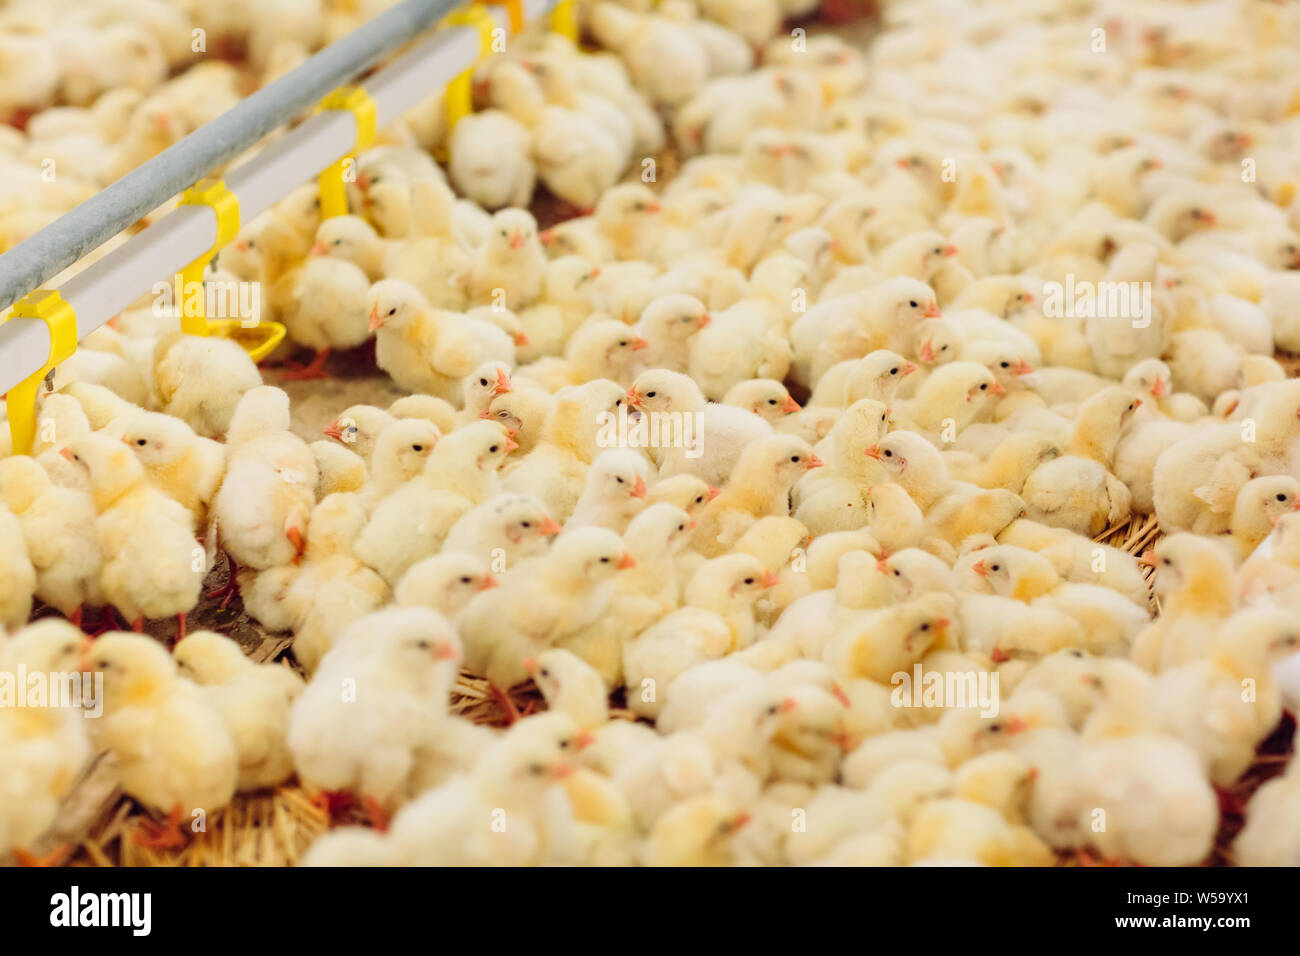 Broiler Chickens Stock Photos & Broiler Chickens Stock